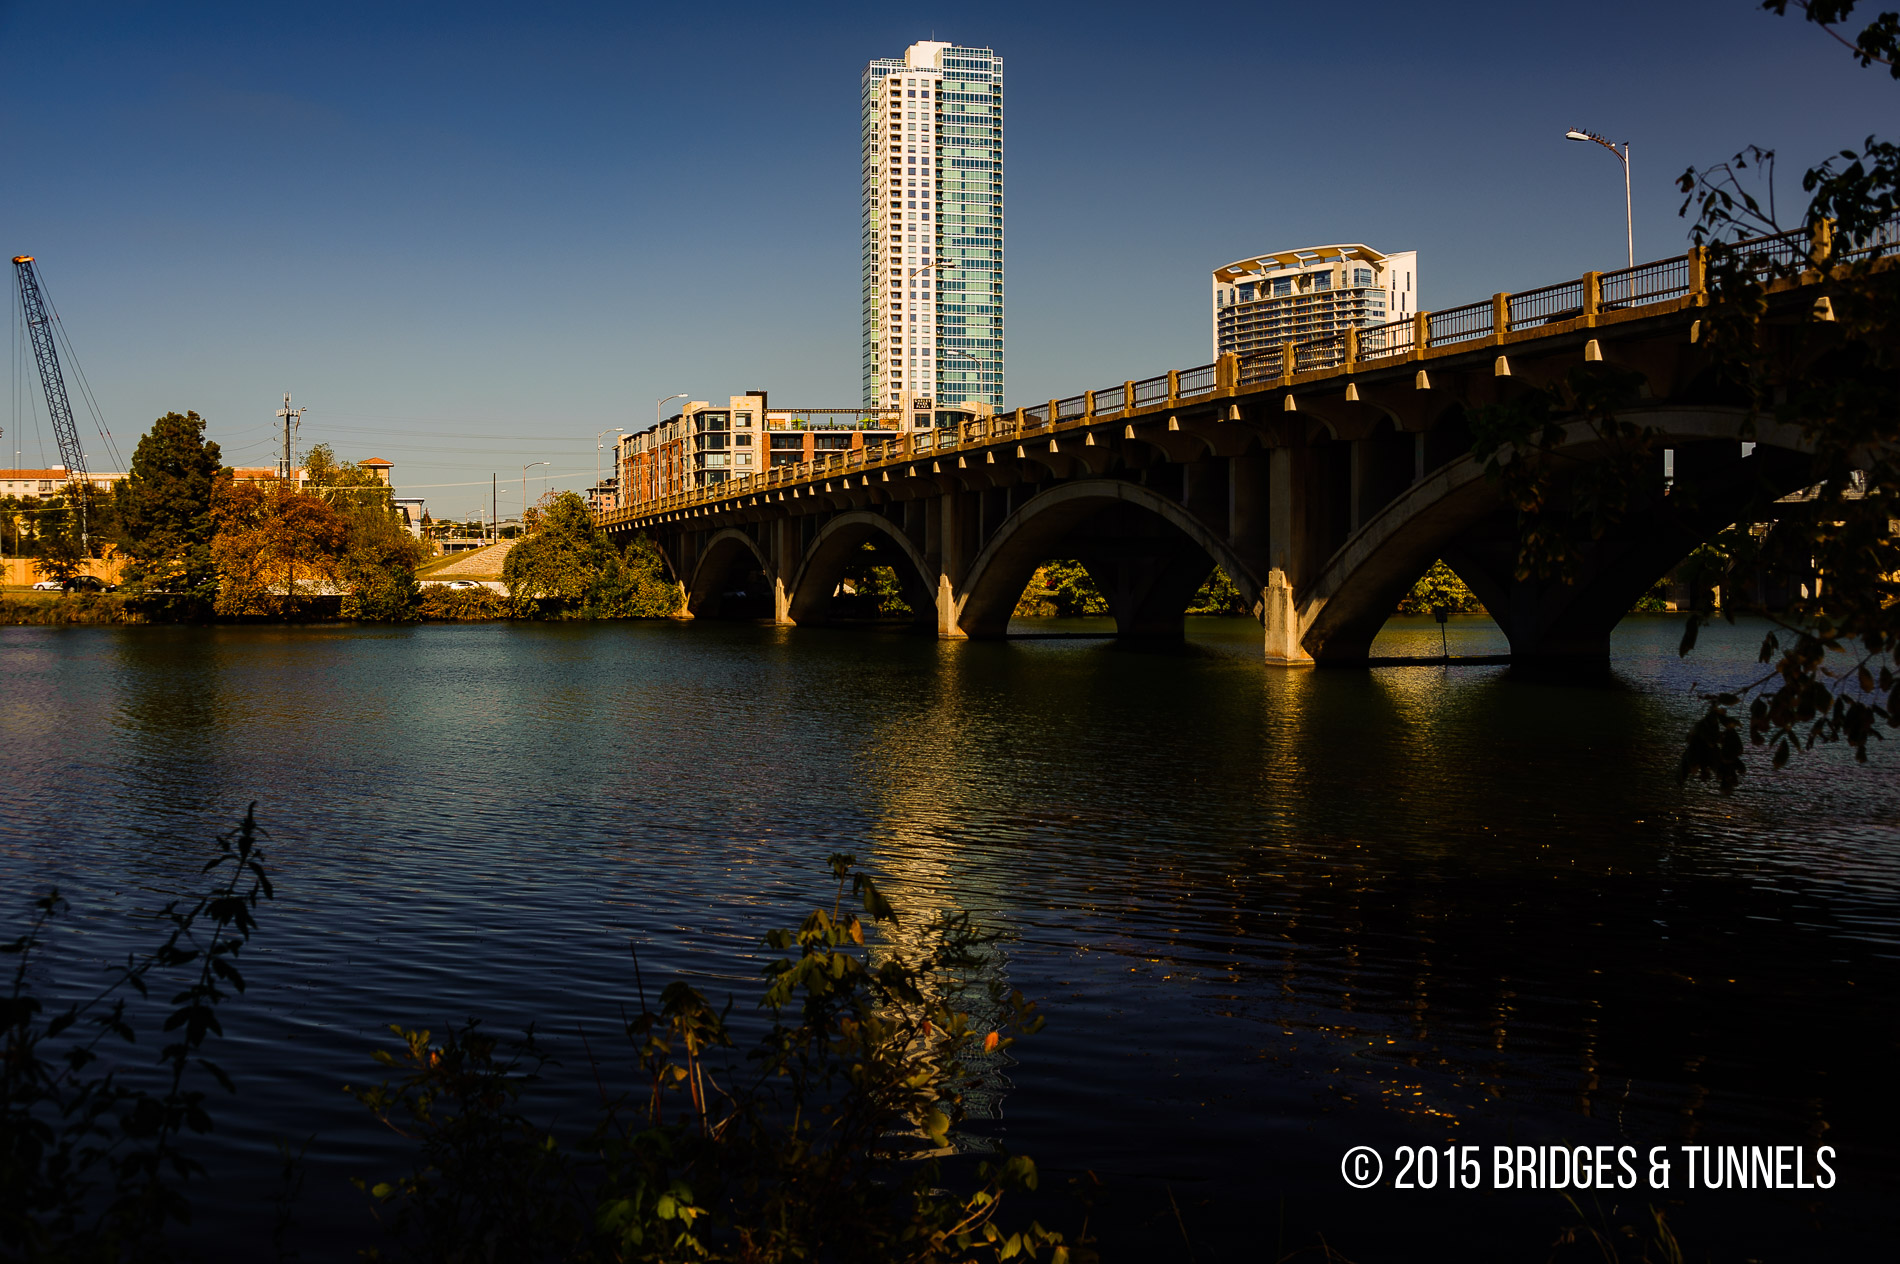 South Lamar Boulevard Bridge (TX Loop 343)